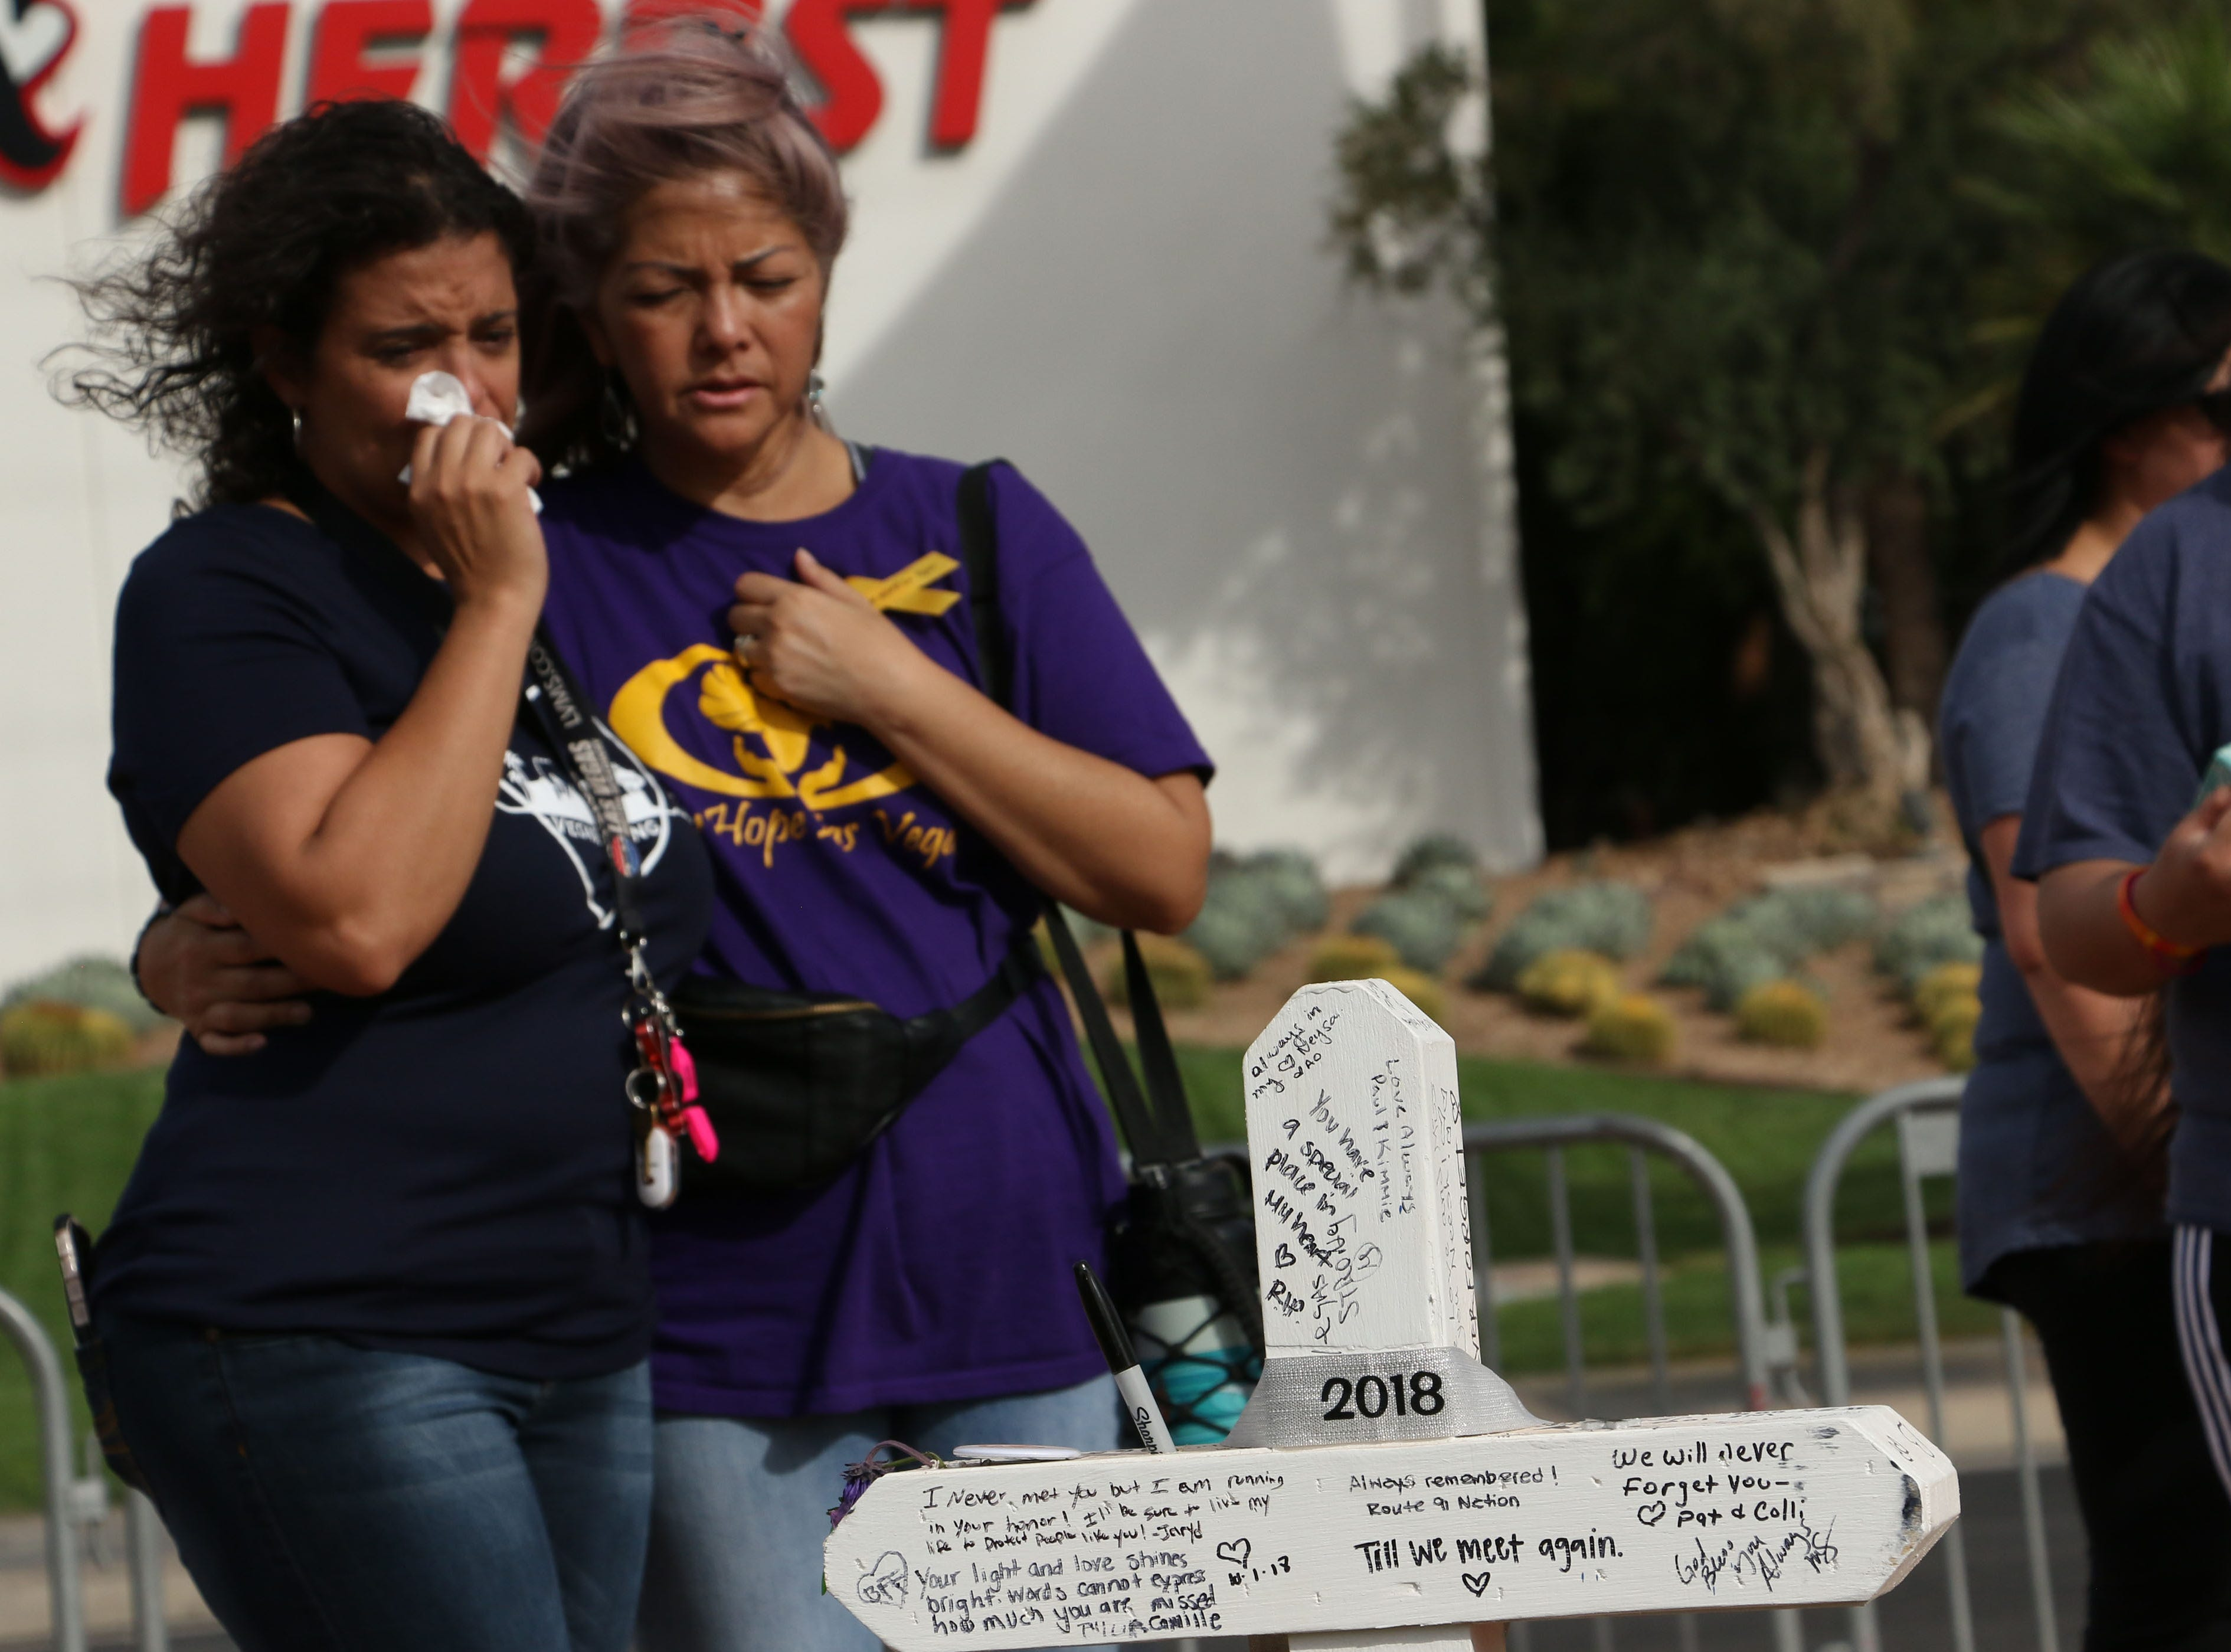 Triana Grigsby, left, and Allison Iha hold each other at a memorial set up next to the welcome to Las Vegas sign as Las Vegas remembers the mass shooting at the Route 91 Harvest Festival one year later on Oct. 1, 2018.